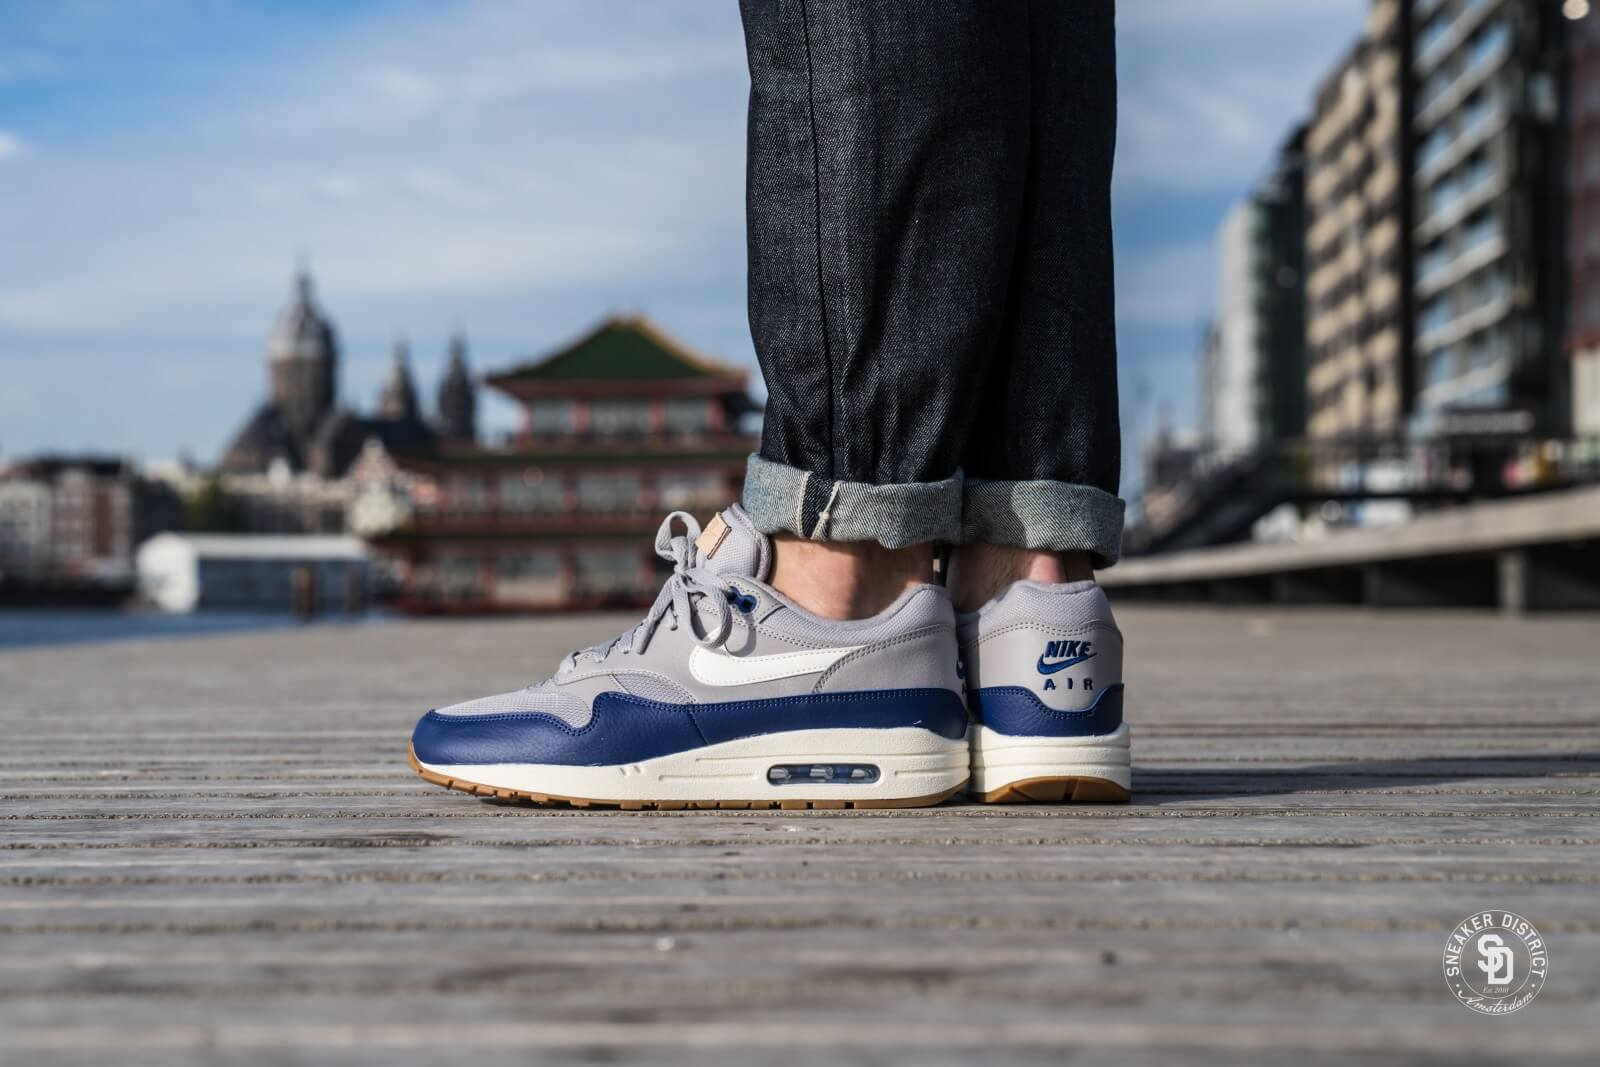 Nike Air Max 1 'BlueGrey' | AH8145 008